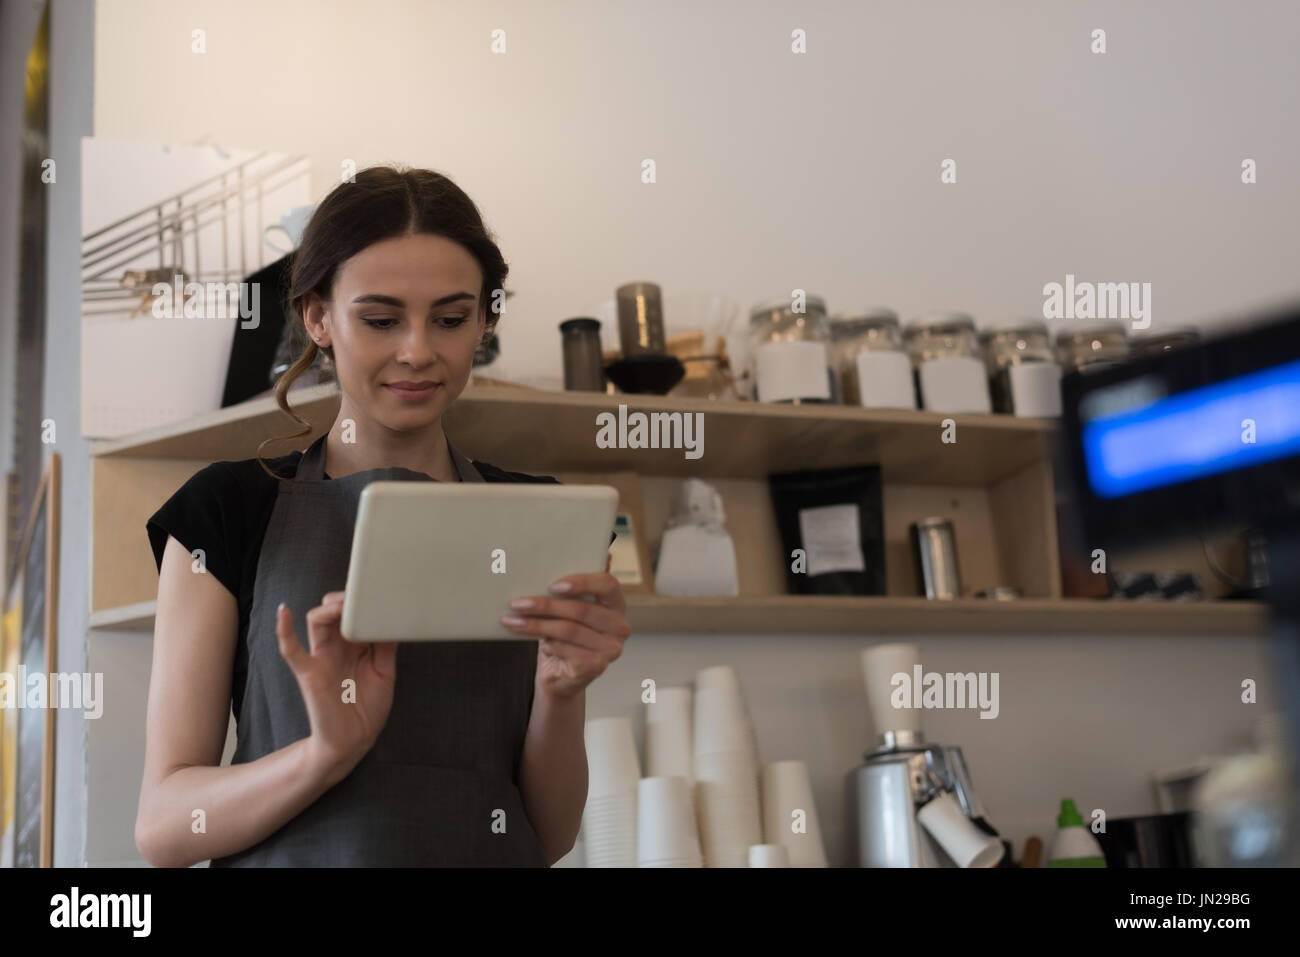 Female owner using digital tablet while standing in kitchen at cafe - Stock Image